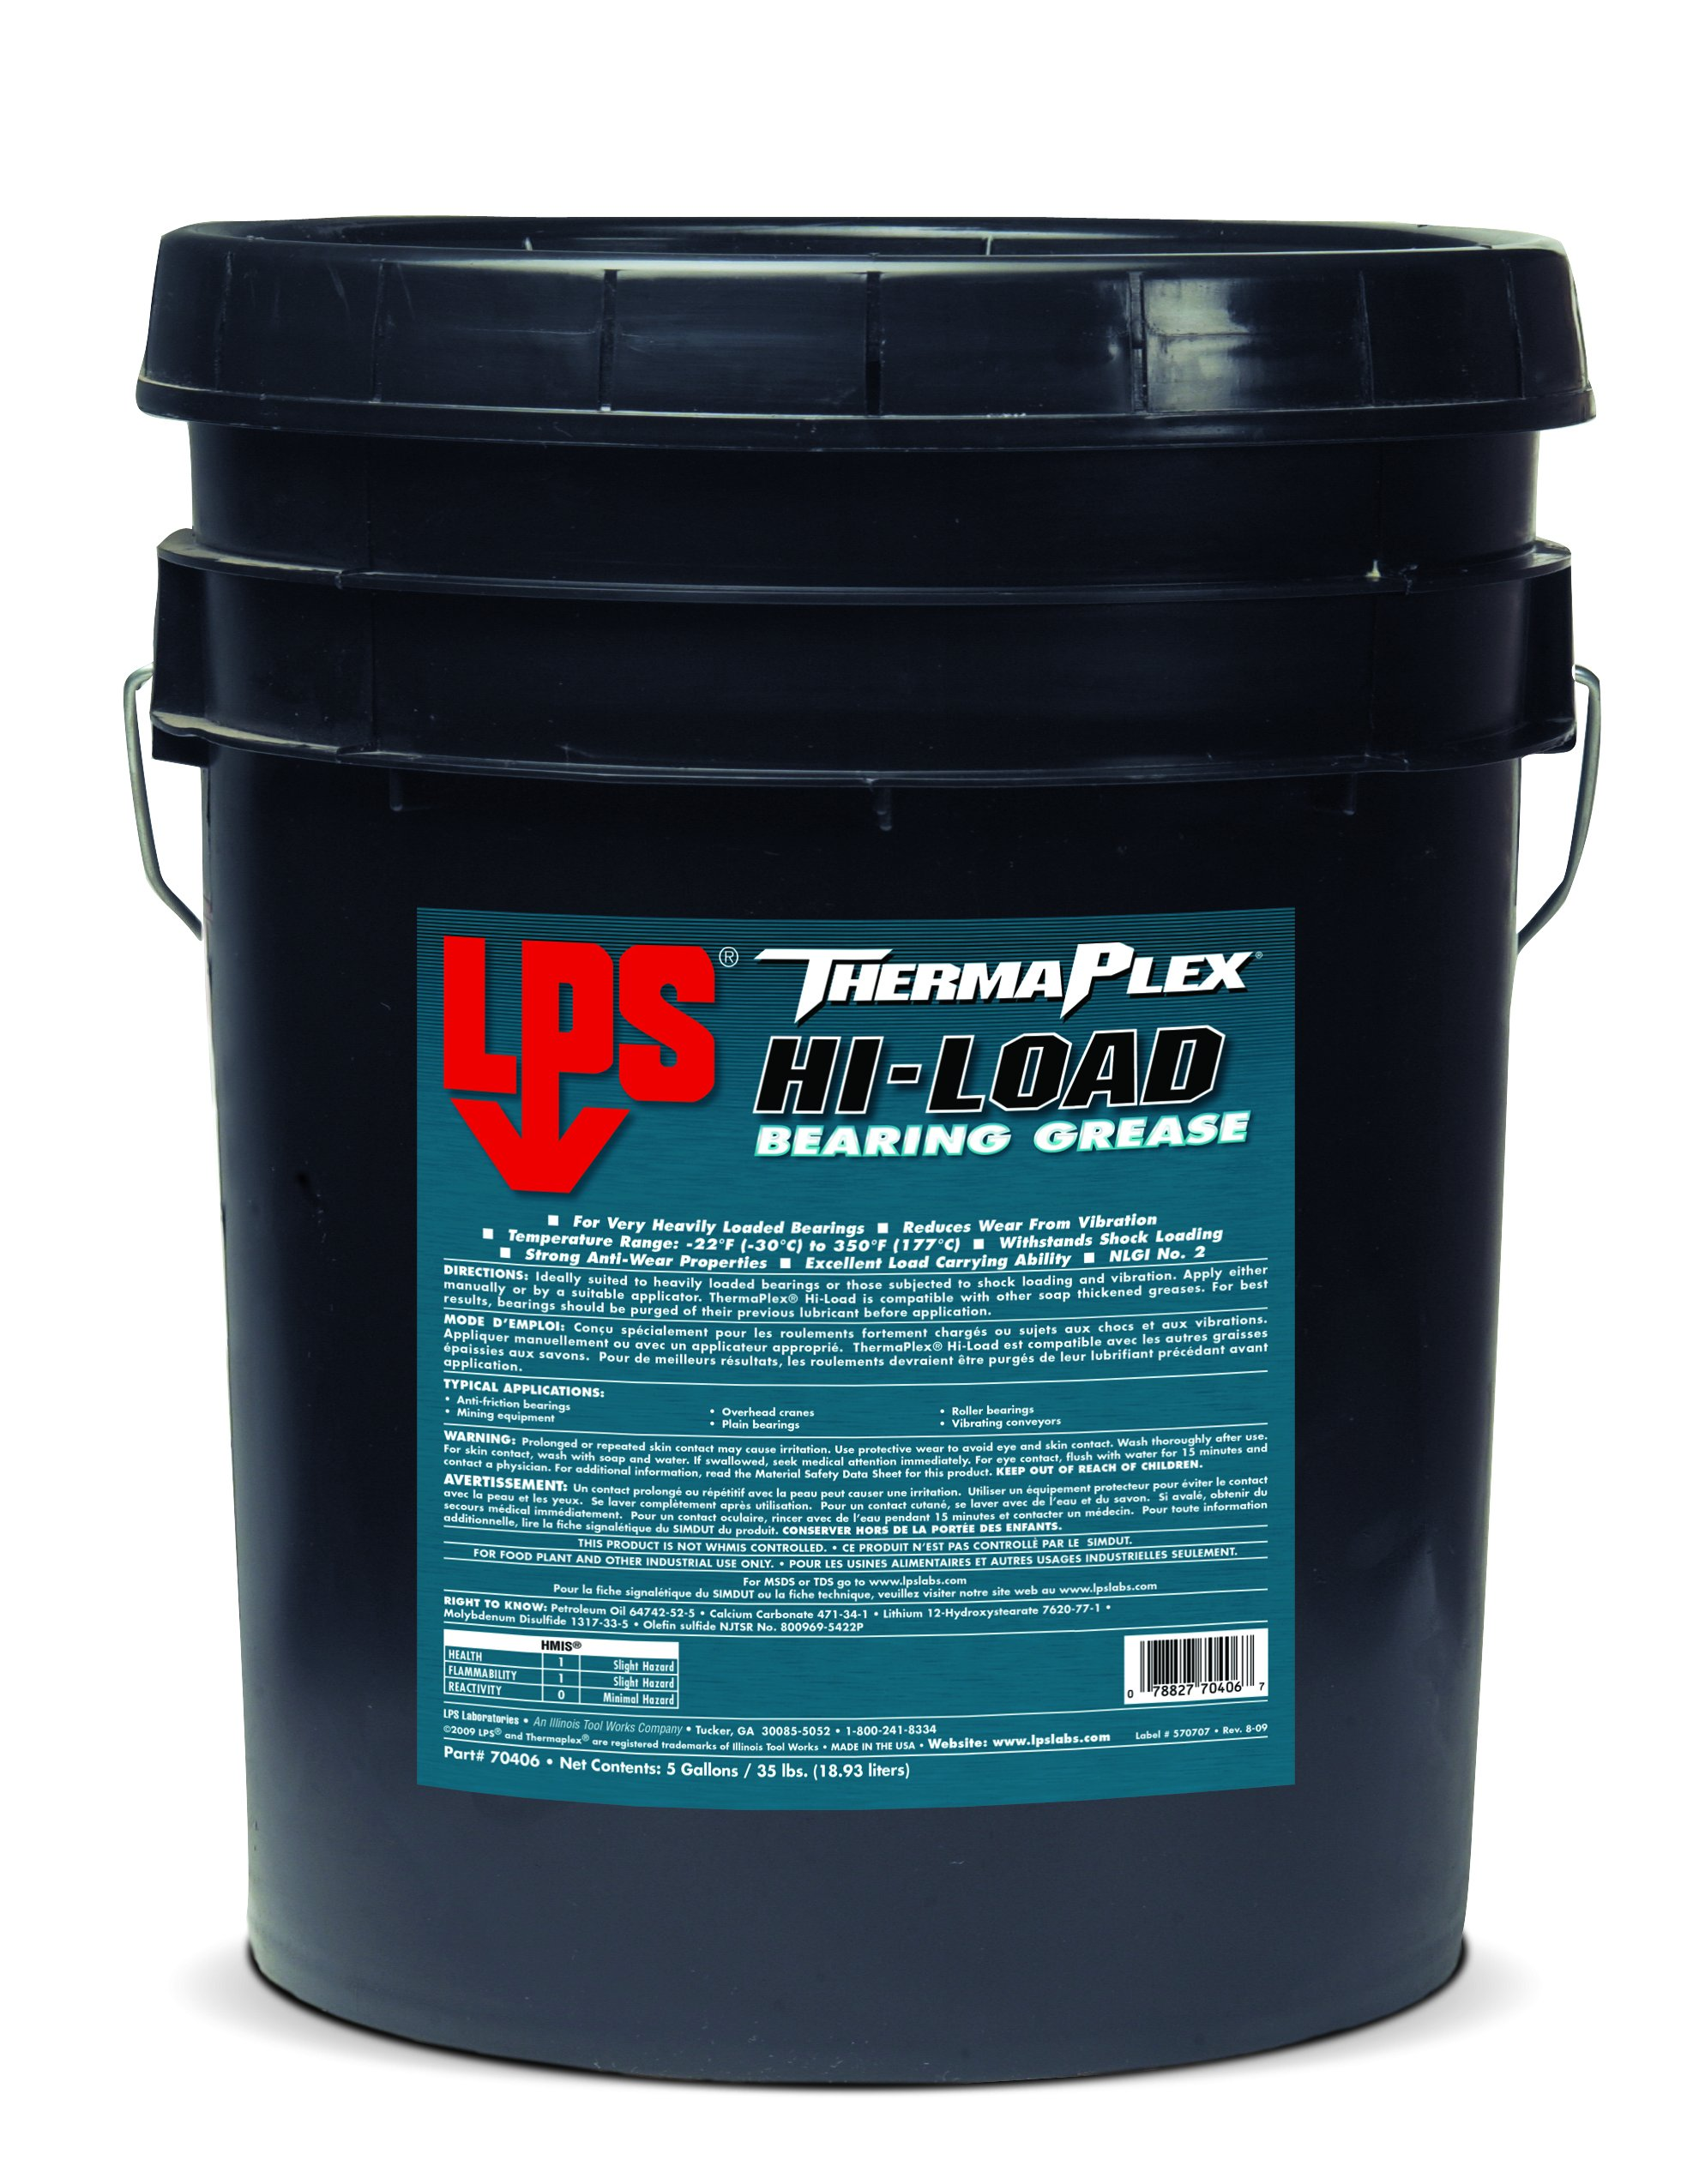 LPS ThermaPlex Hi-Load Bearing Grease, 35 lbs by LPS